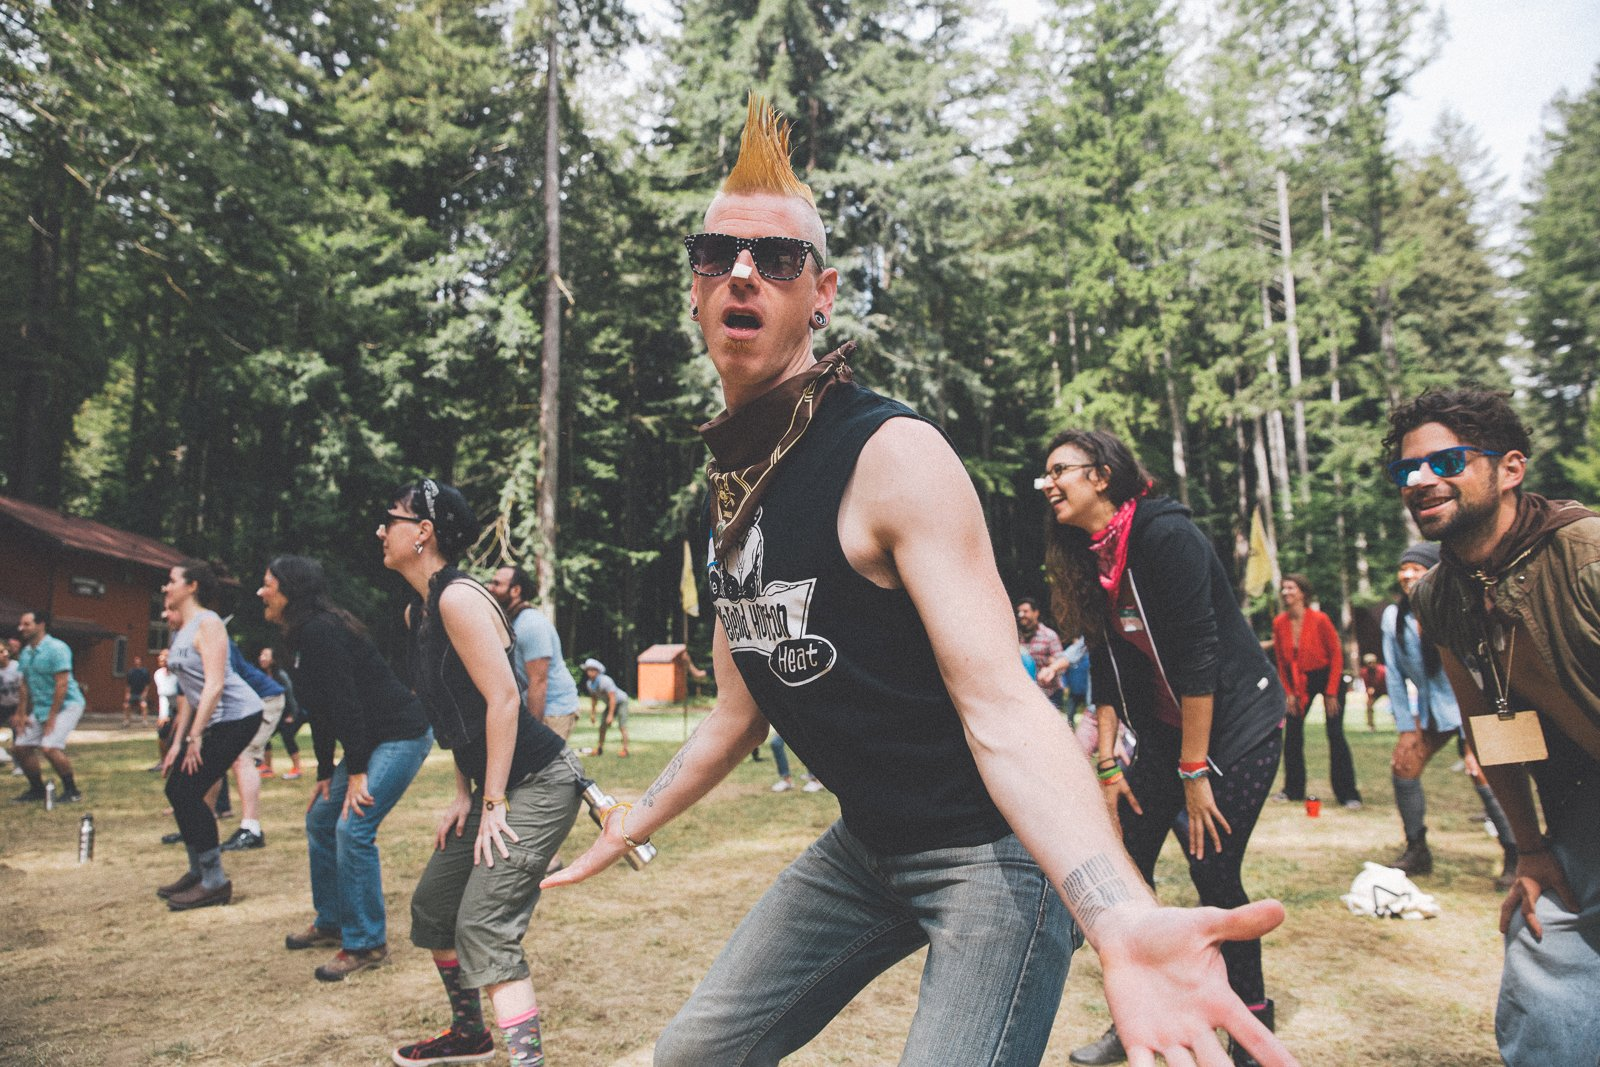 Camper with a yellow mohawk participating in a group activity